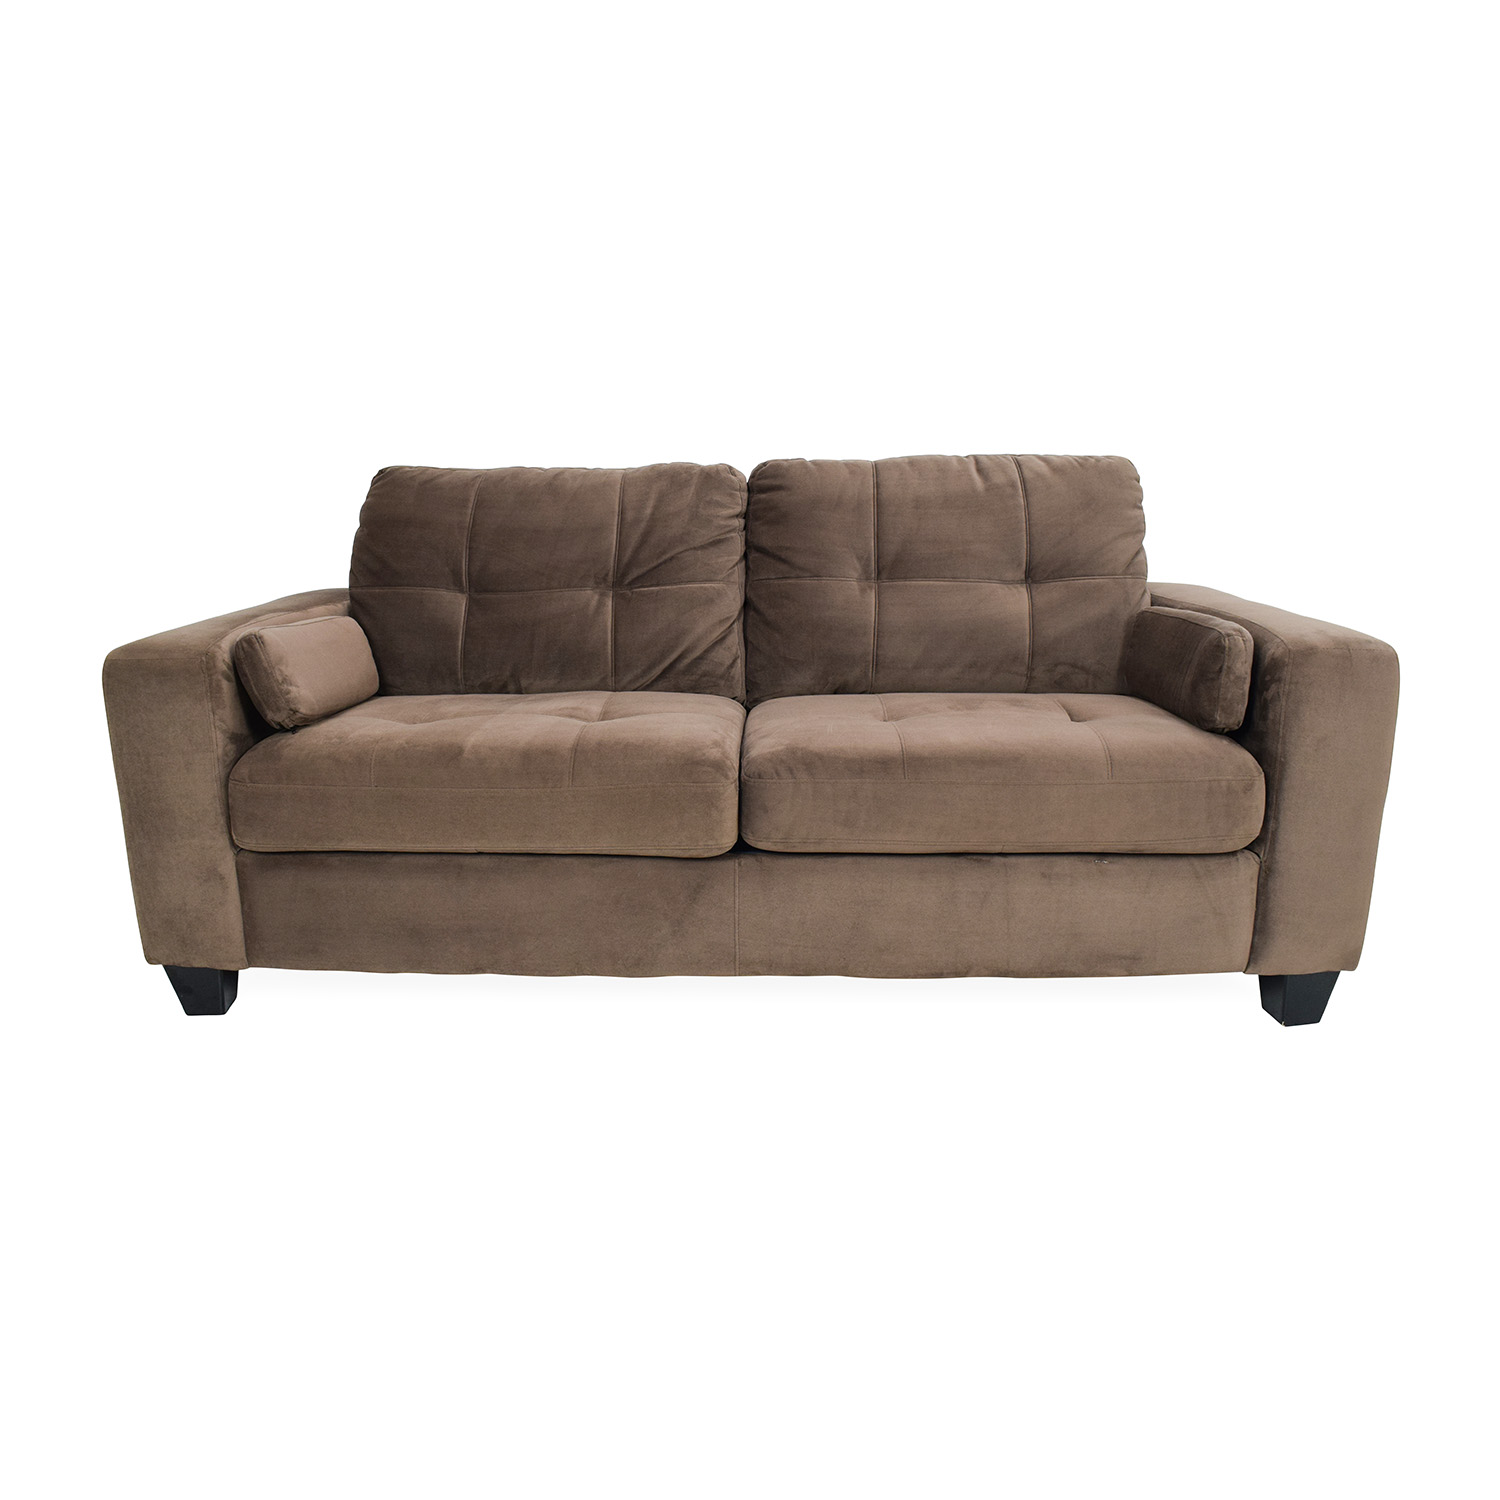 Jennifer Convertibles Full Size Sofa